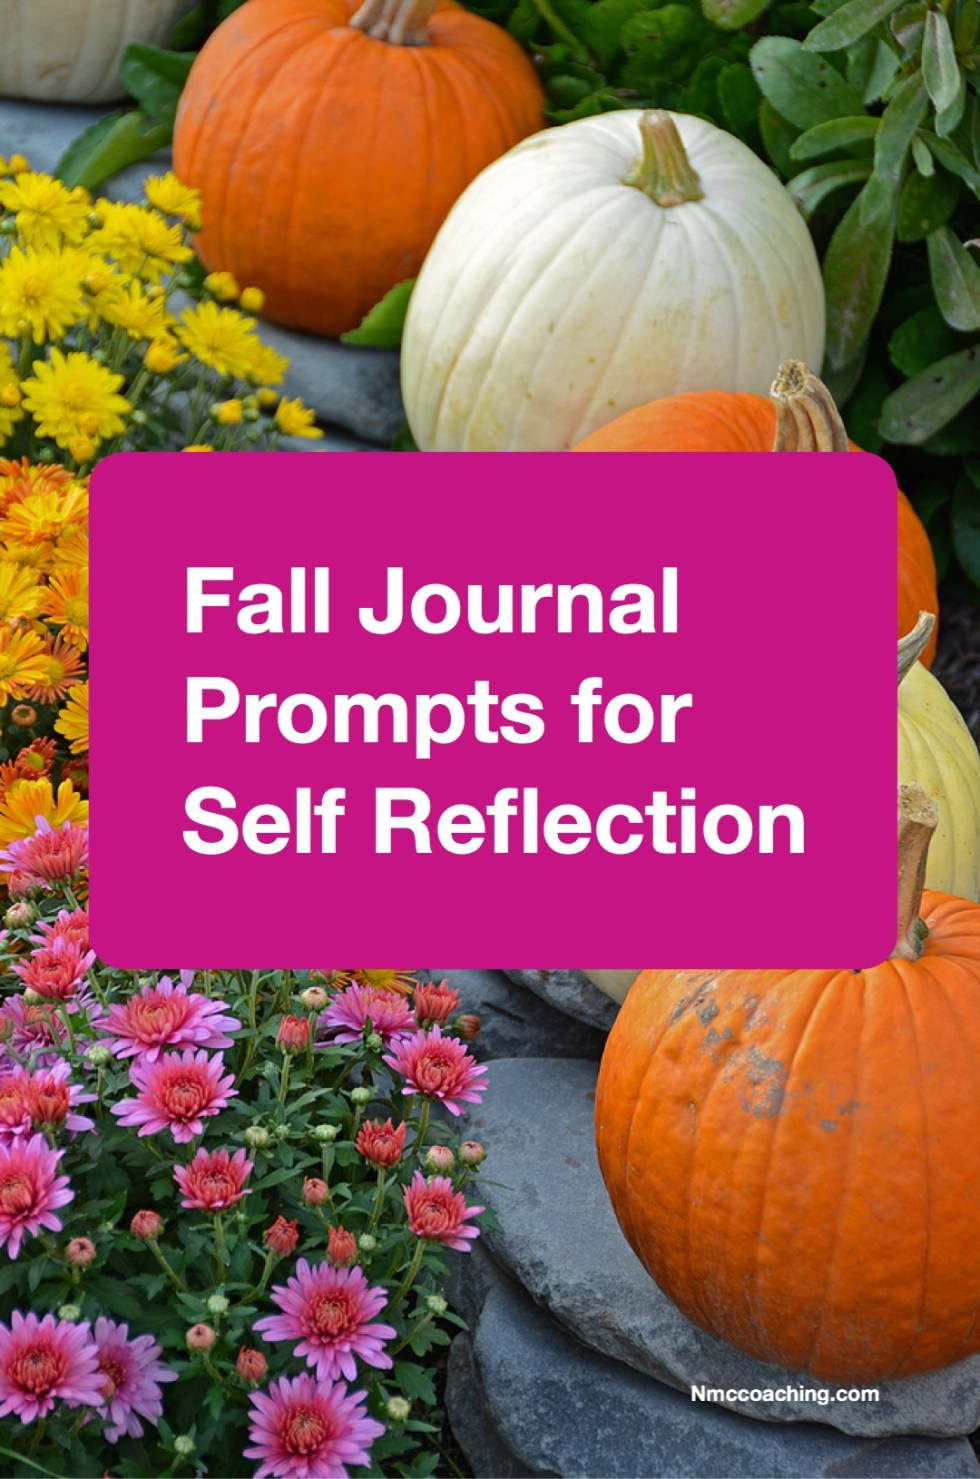 Fall journal prompts for self reflection